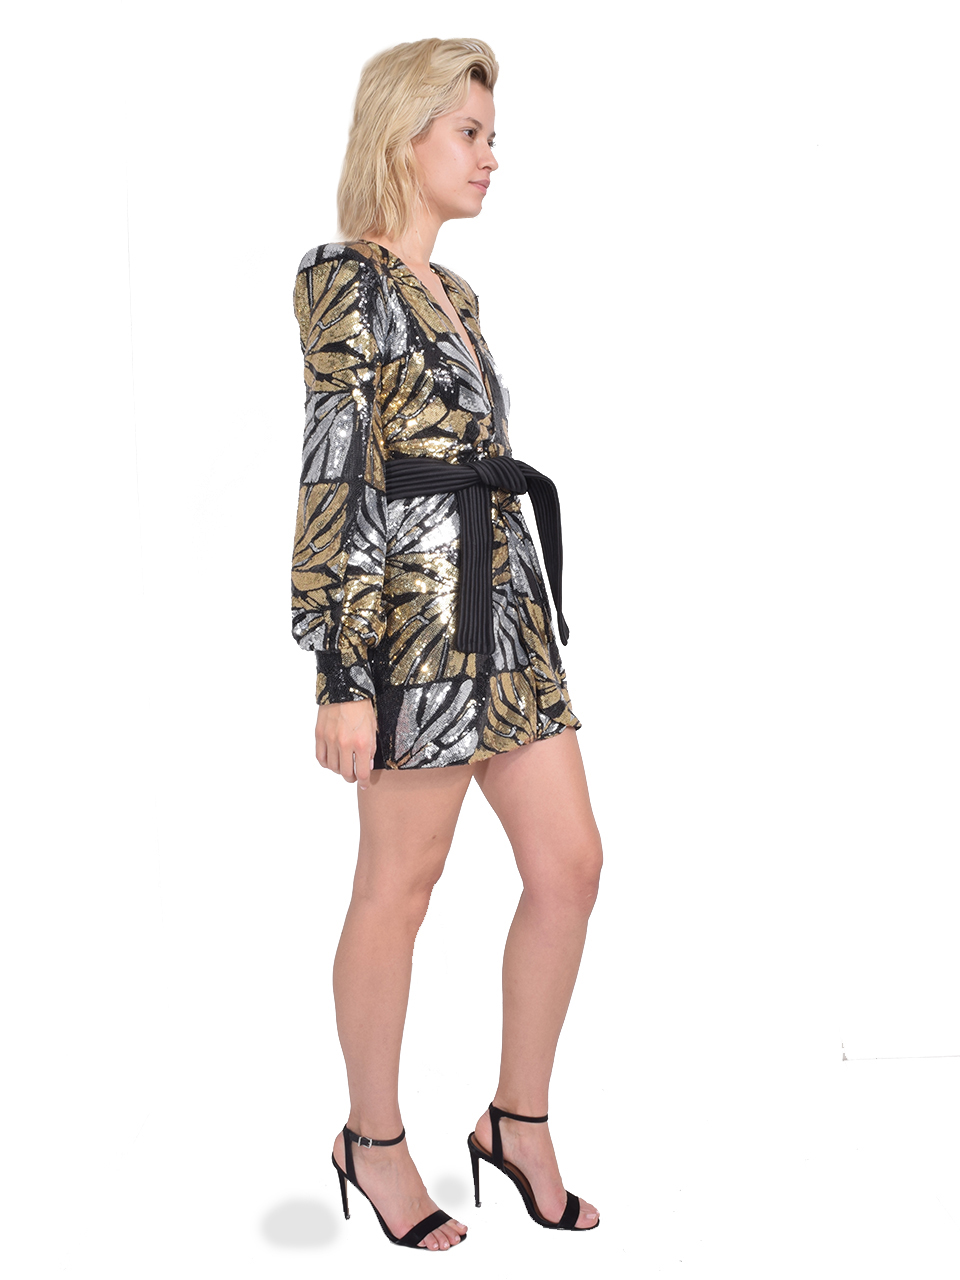 Zhivago Bringing Up Baby Dress in Black/Gold Side View